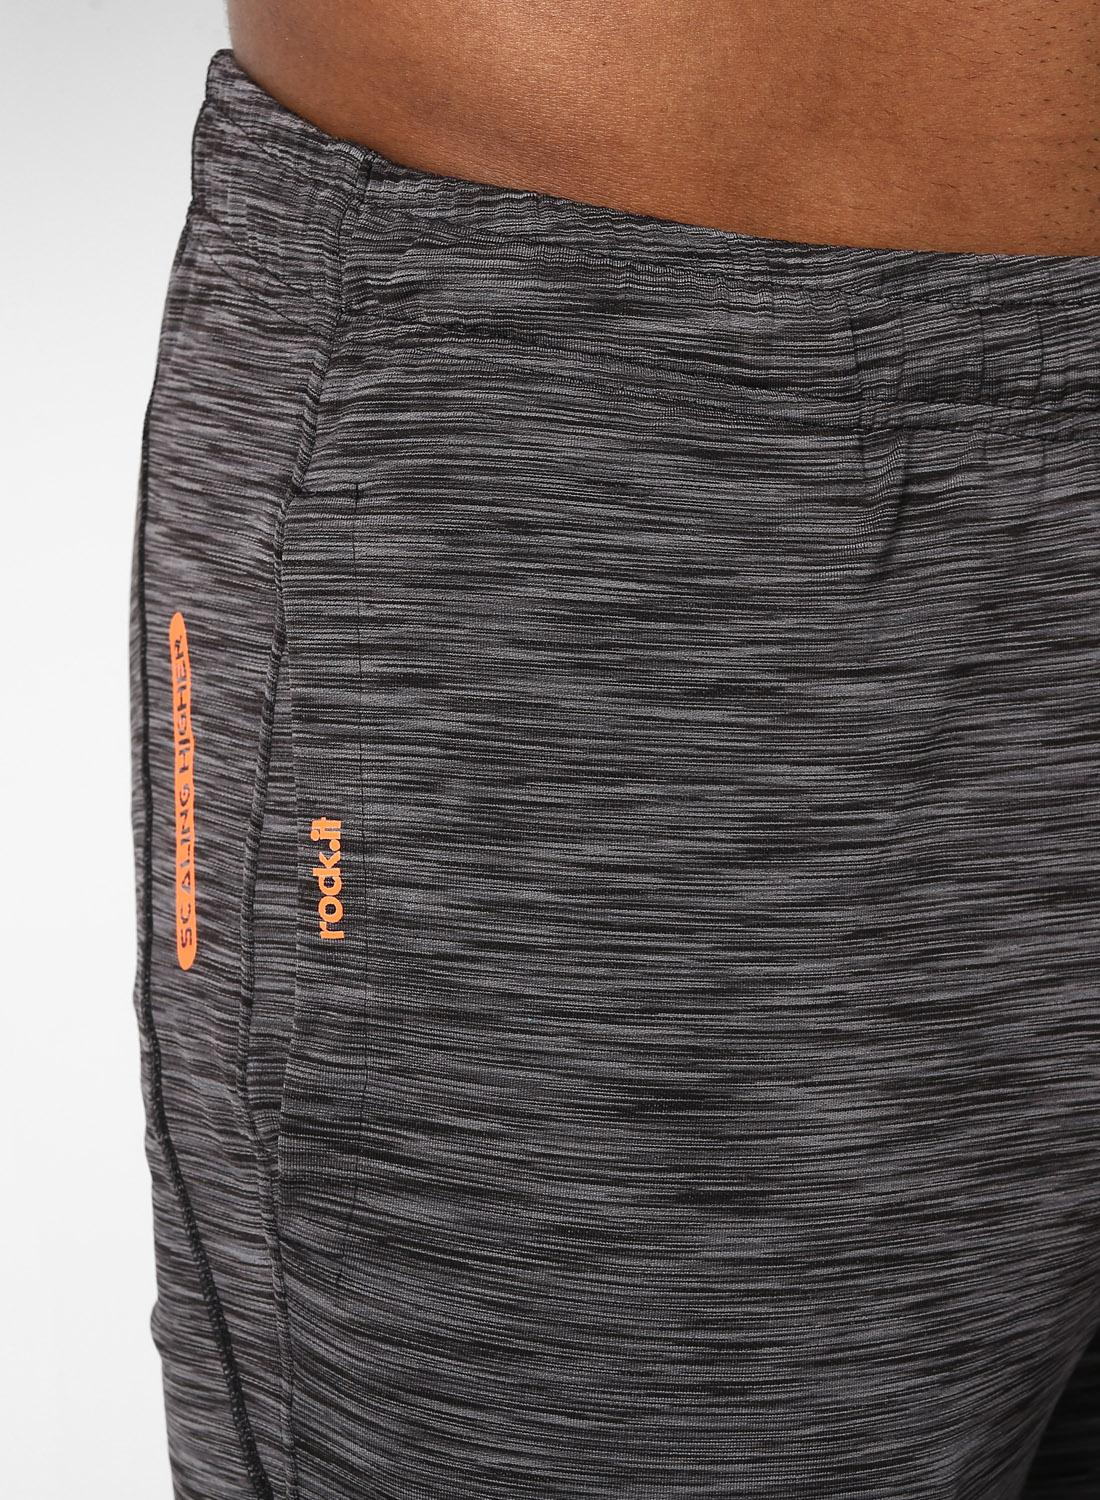 Buy Rock It Dark Grey Printed Swift Dri Lower Online In India Chic Original Hovering Black Product Image Hovered